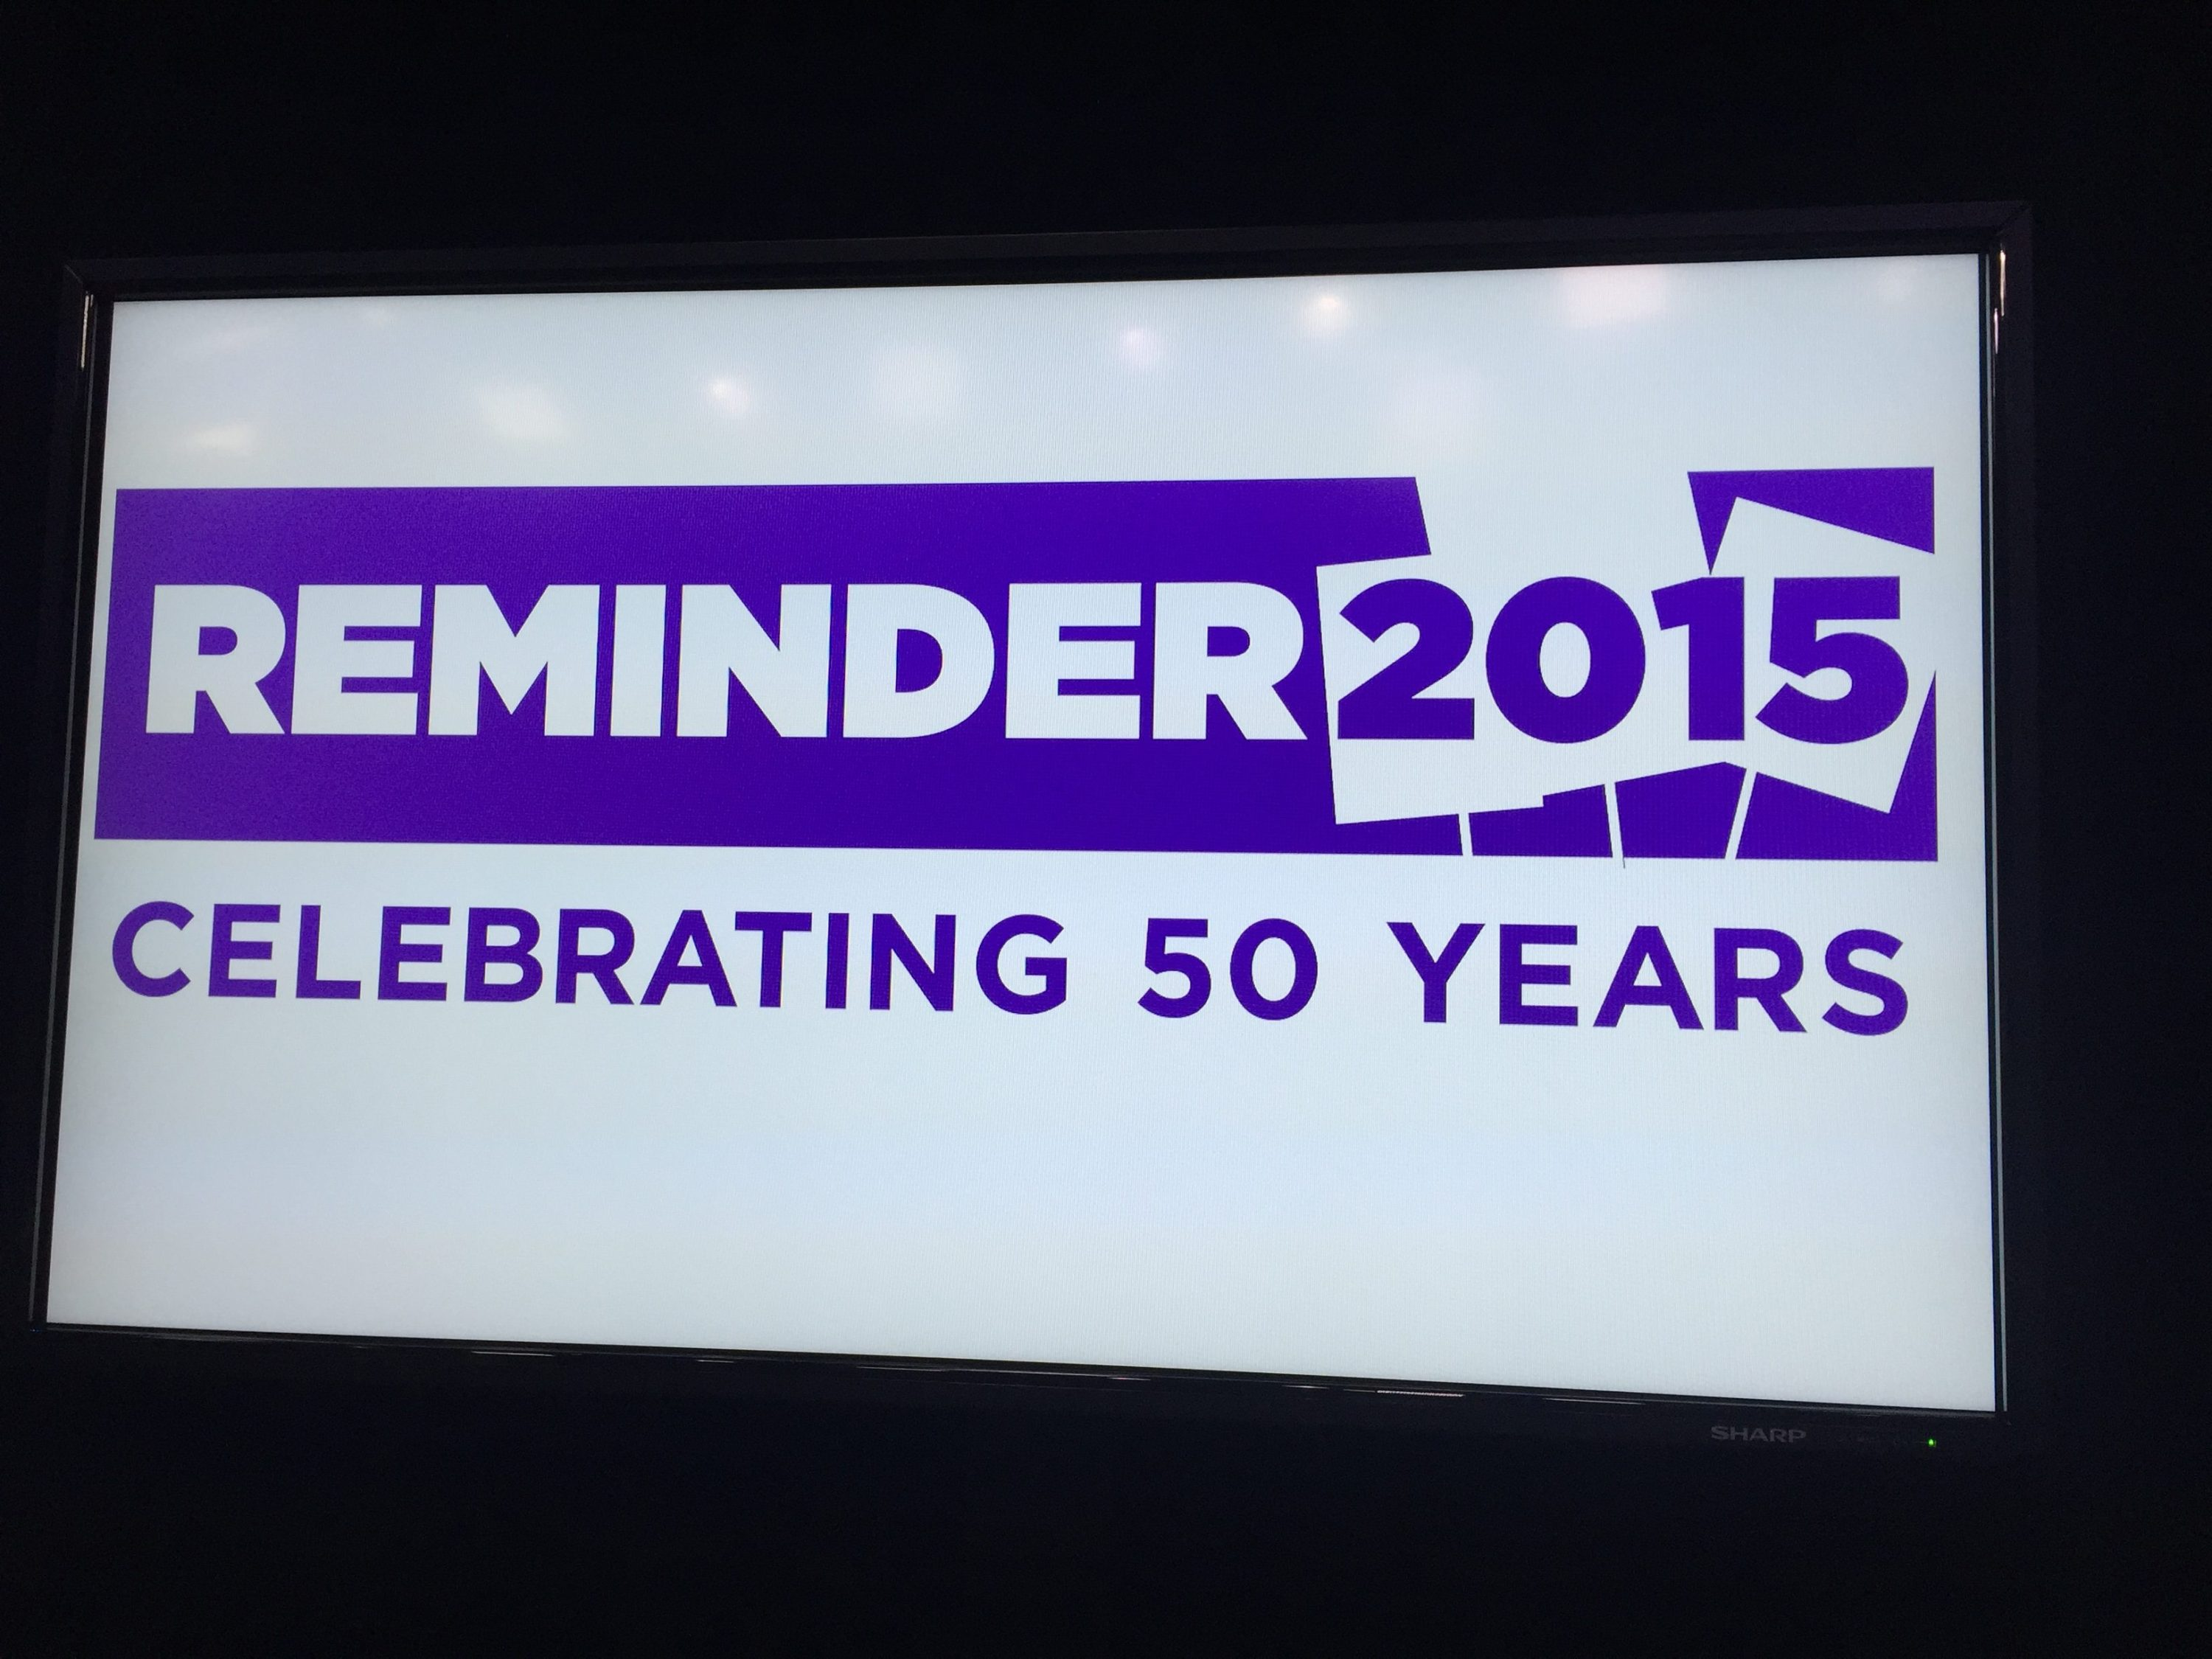 day of Reminder 2015